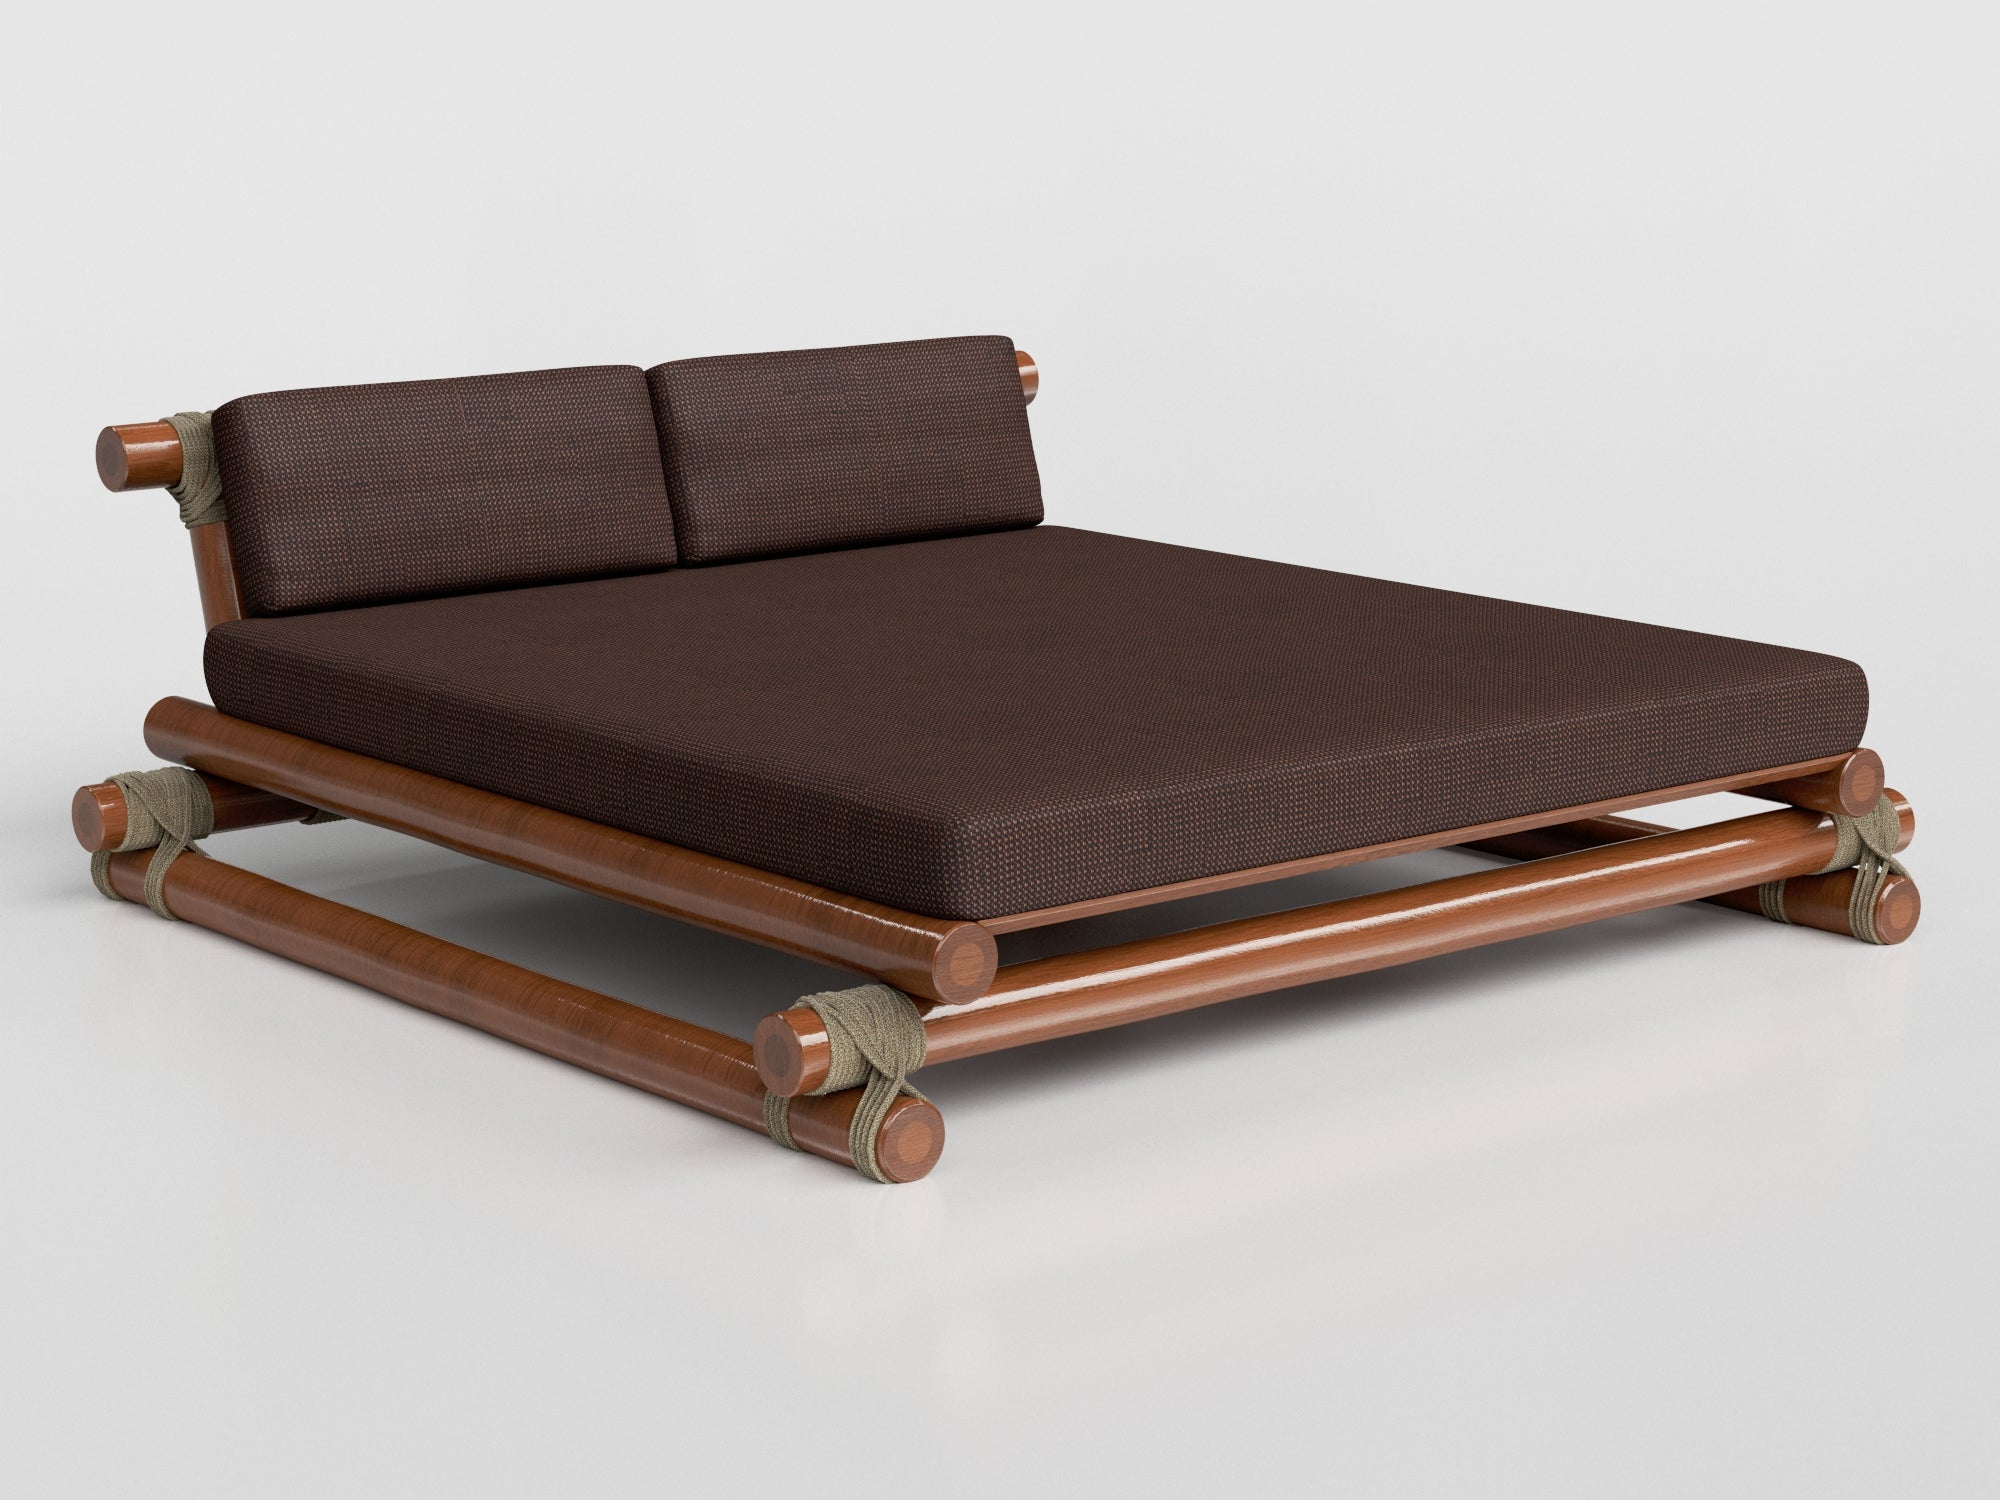 2688 - Trancoso Daybed